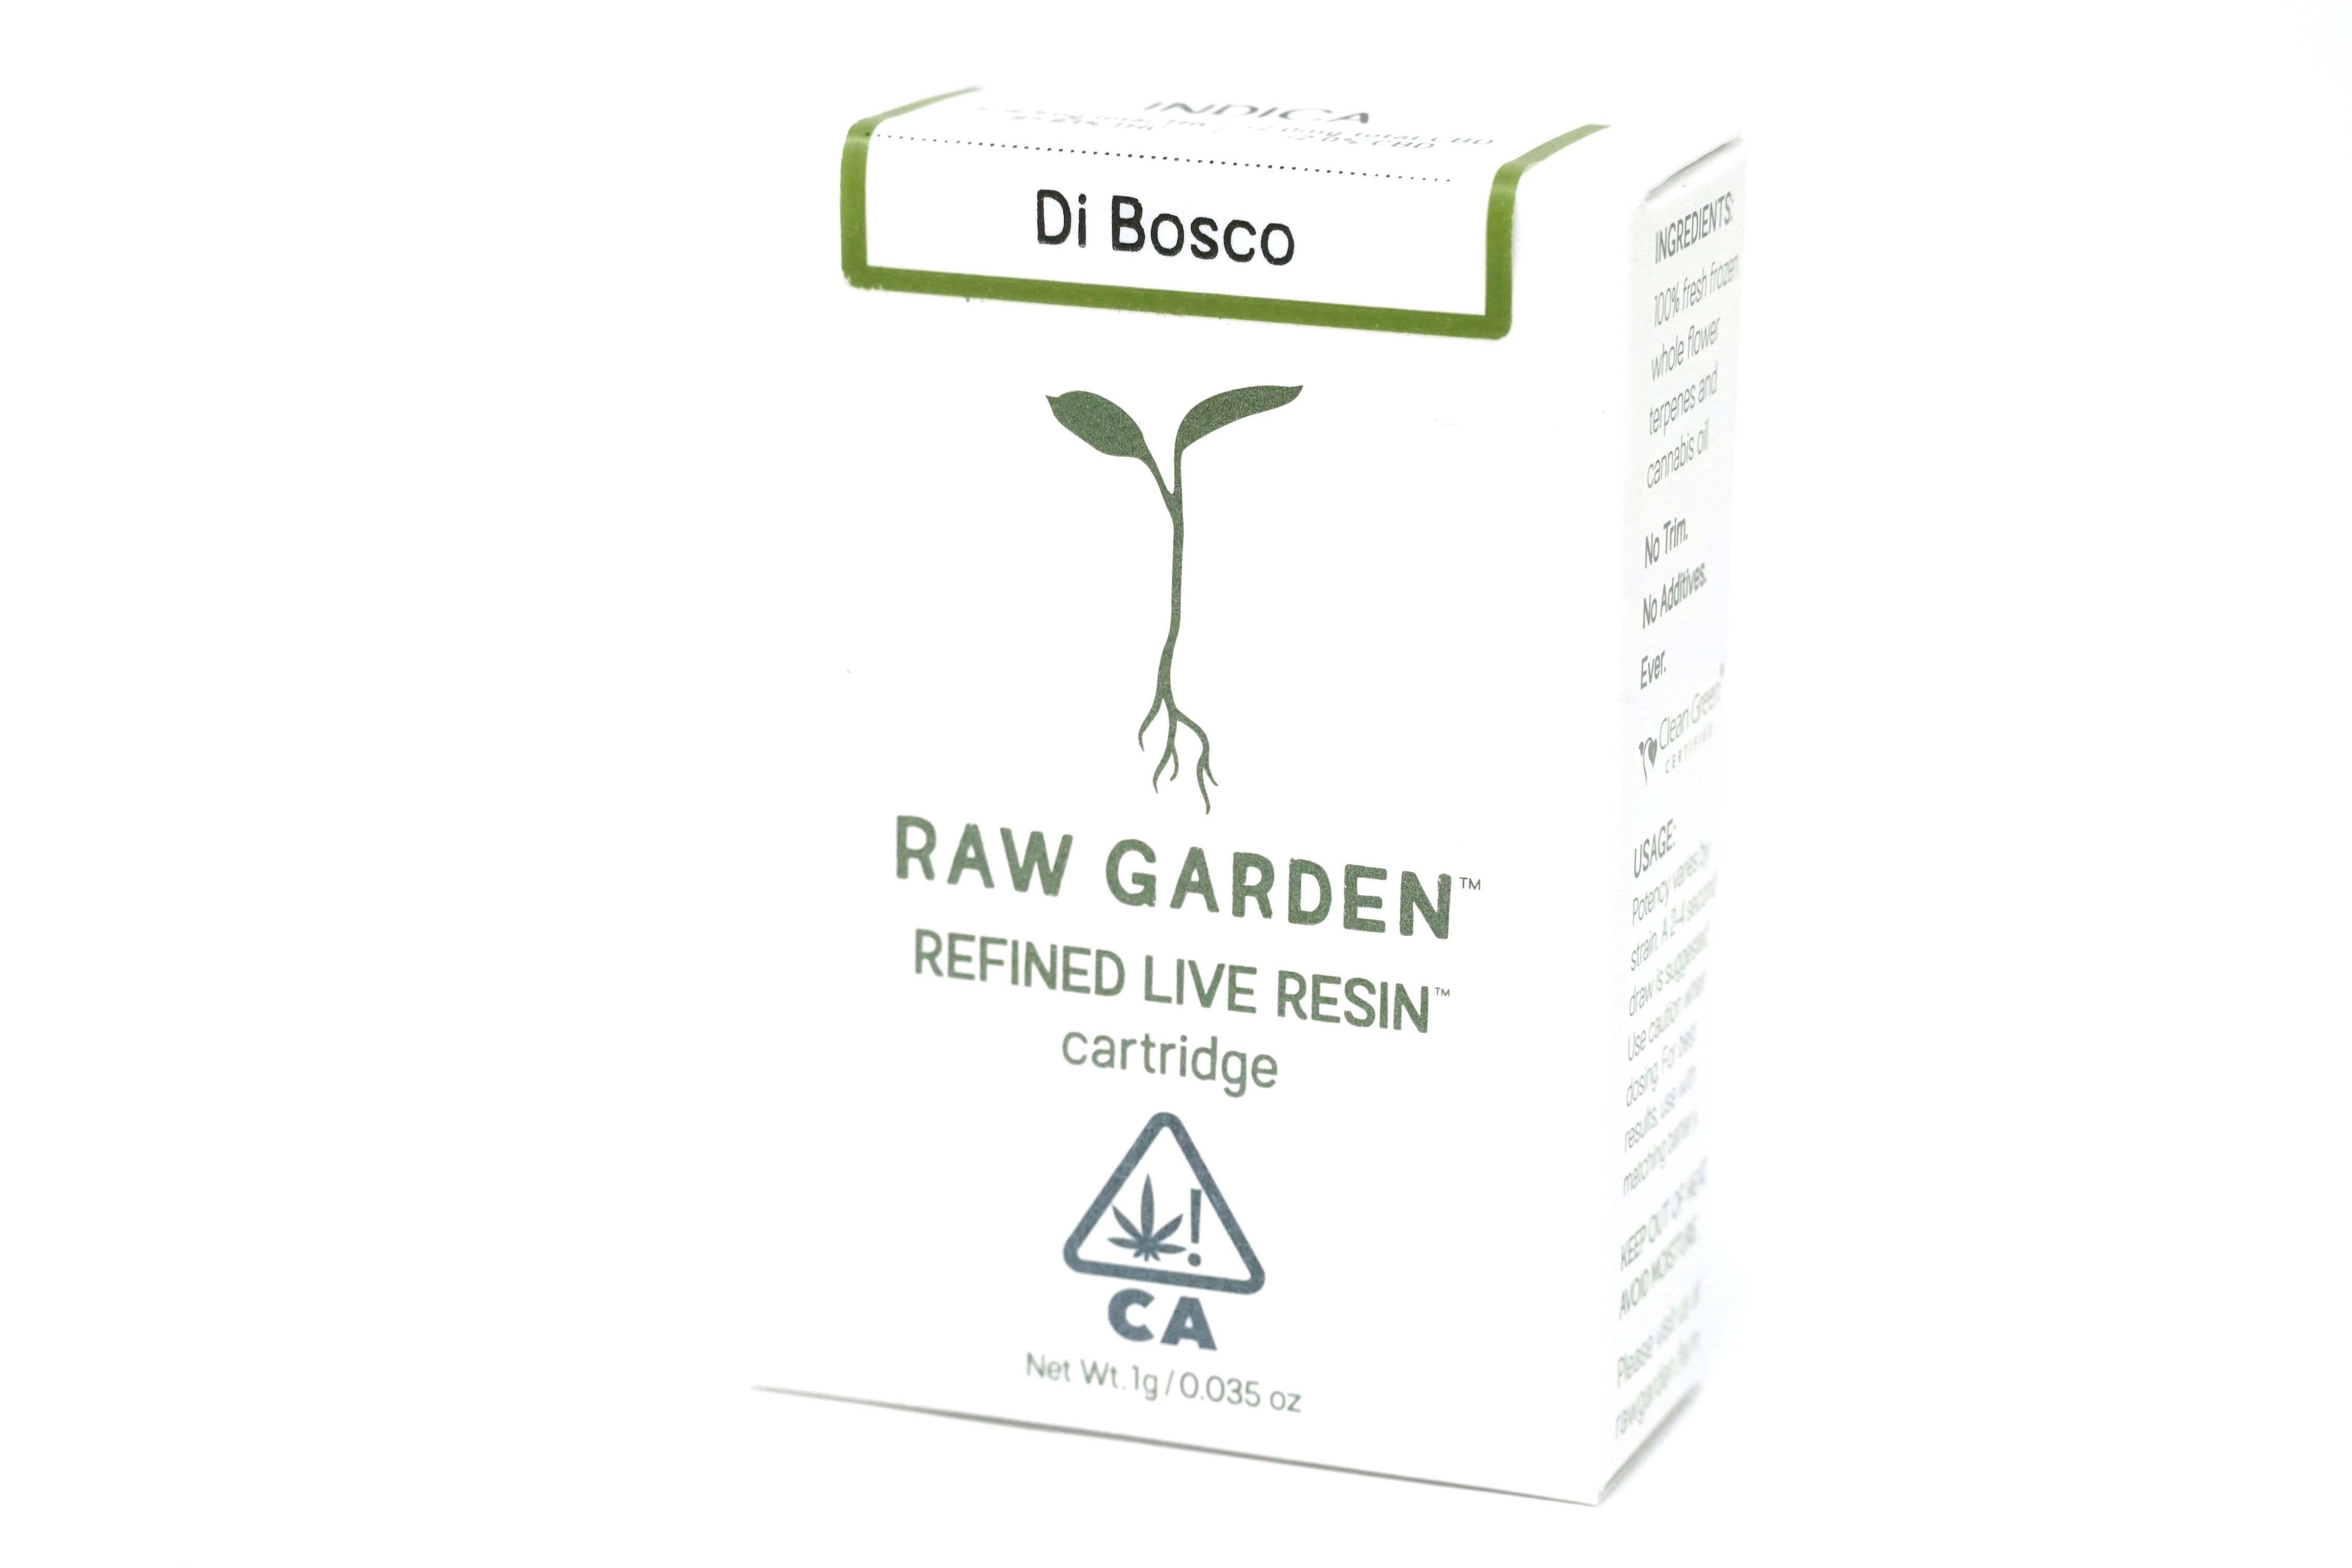 Raw Garden - Di Bosco 1000mg